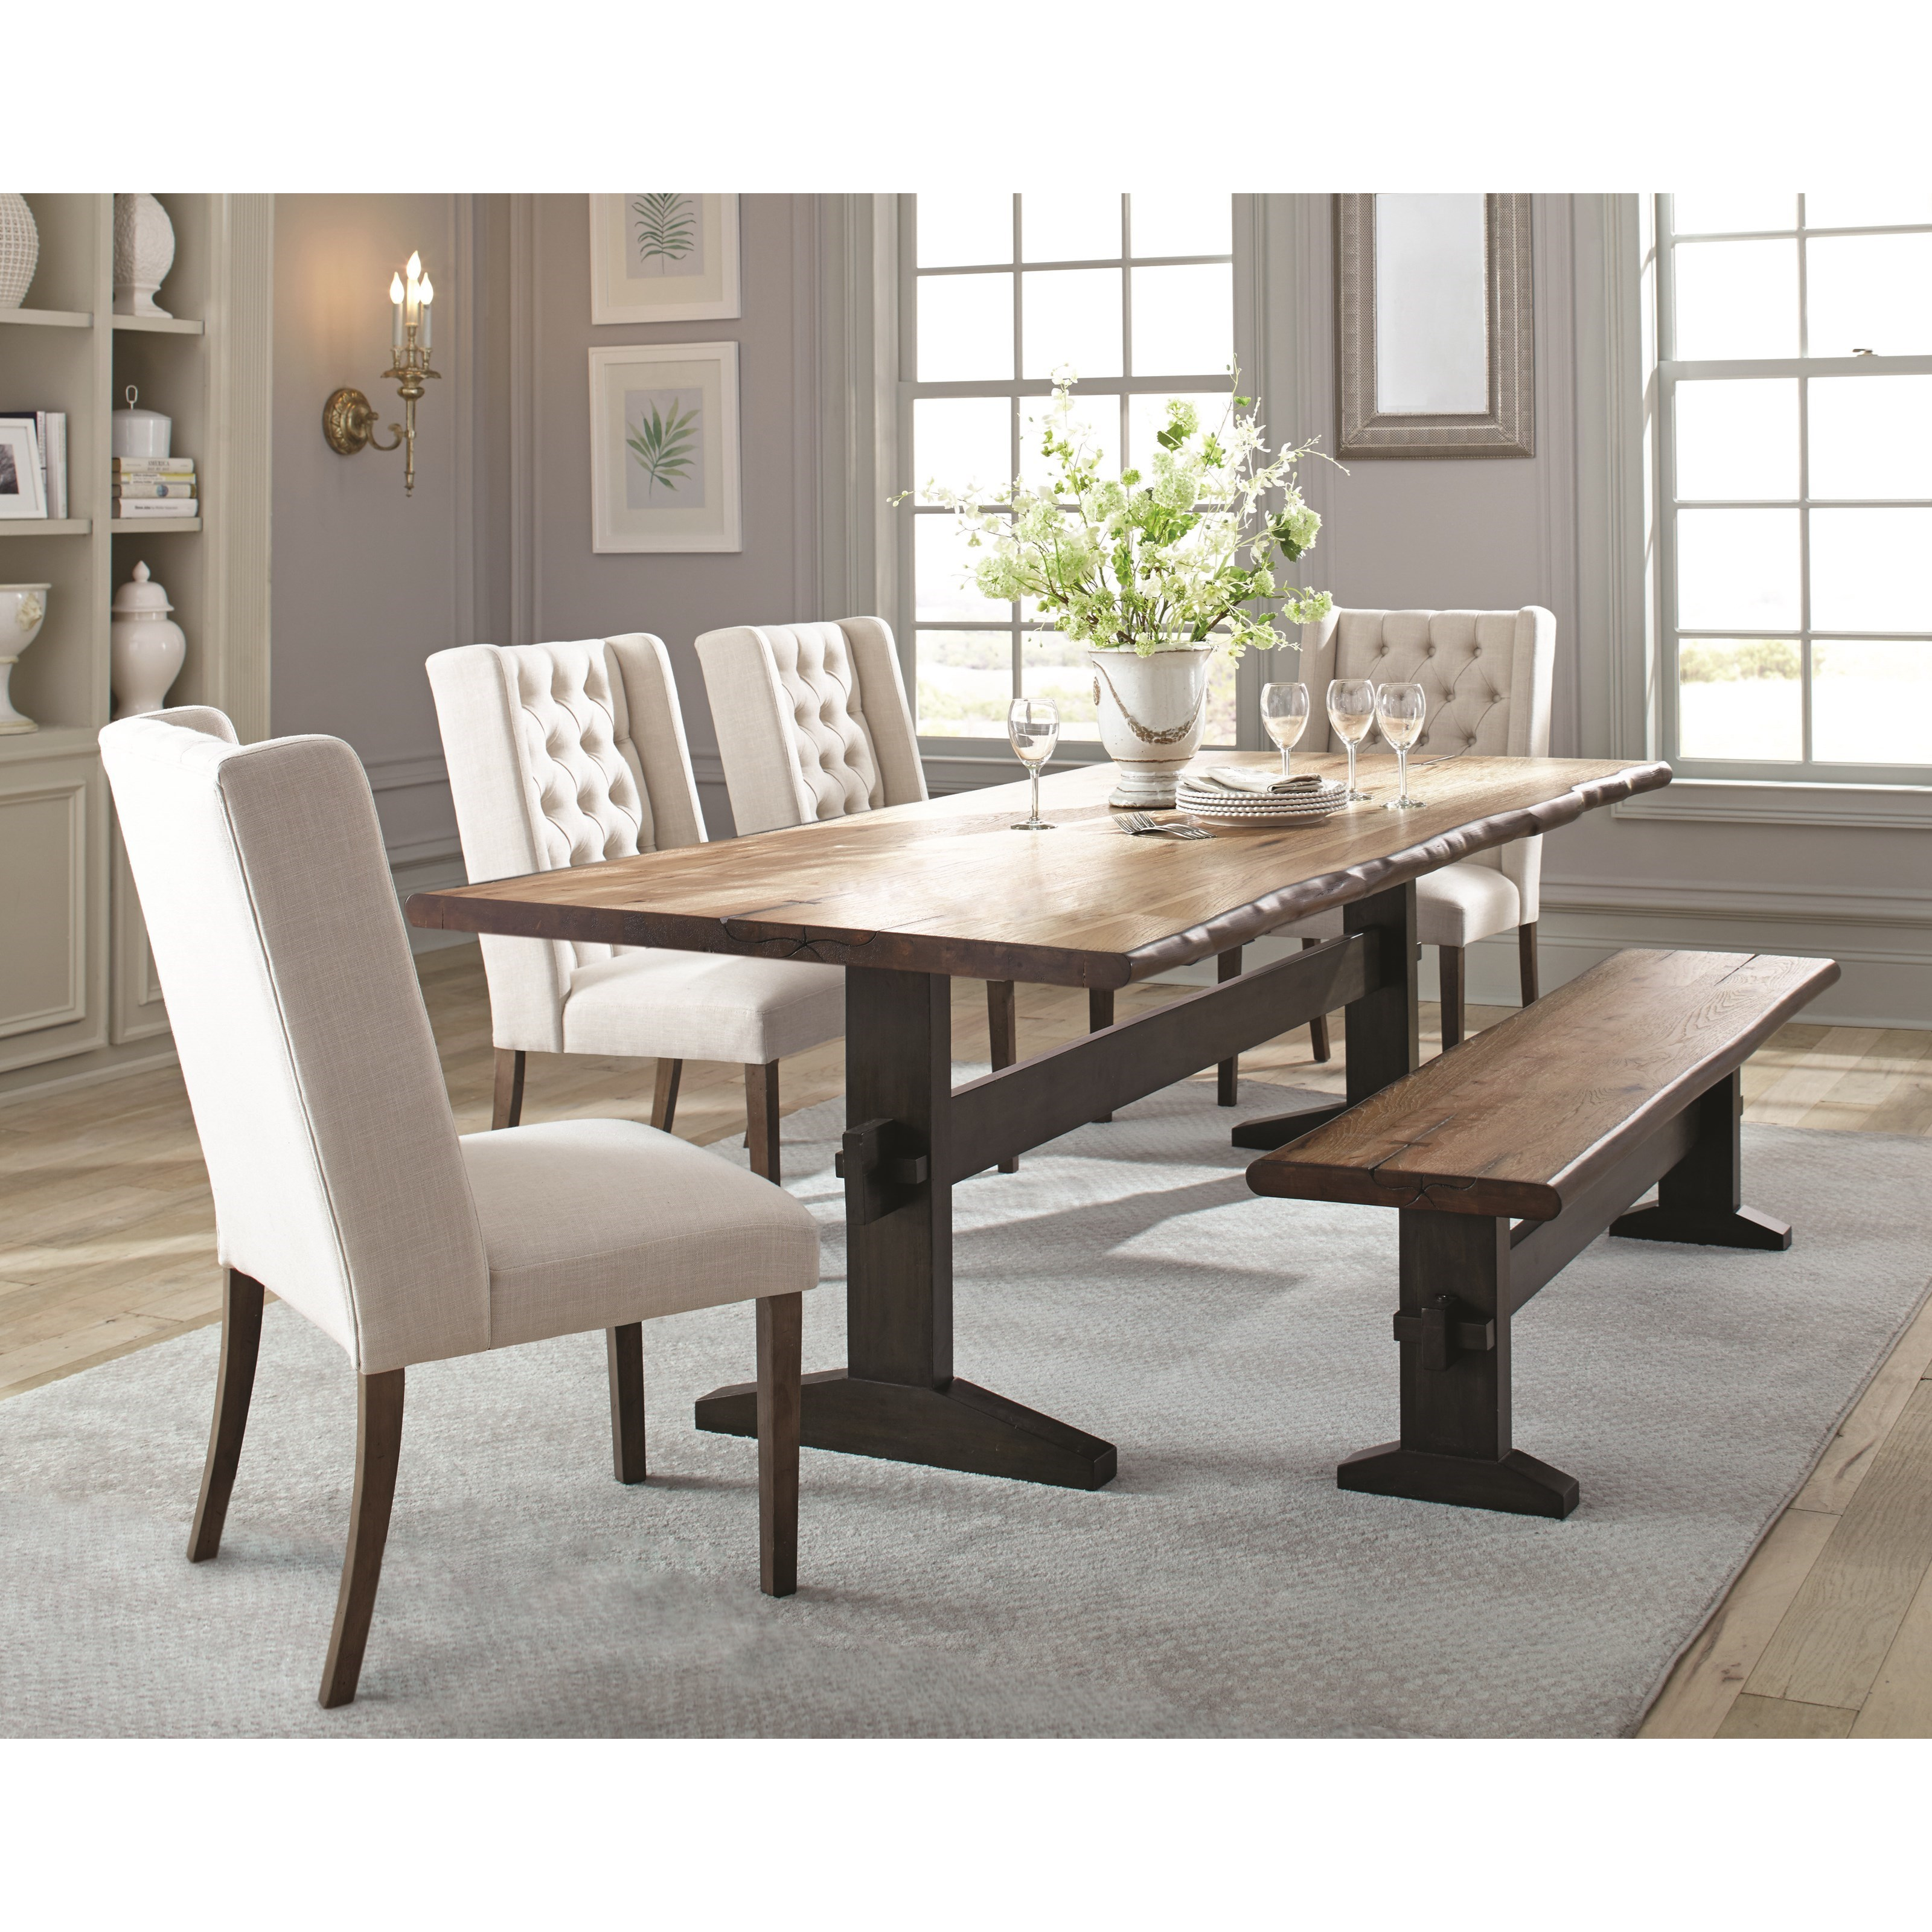 Burnham Dining Table Set with Bench